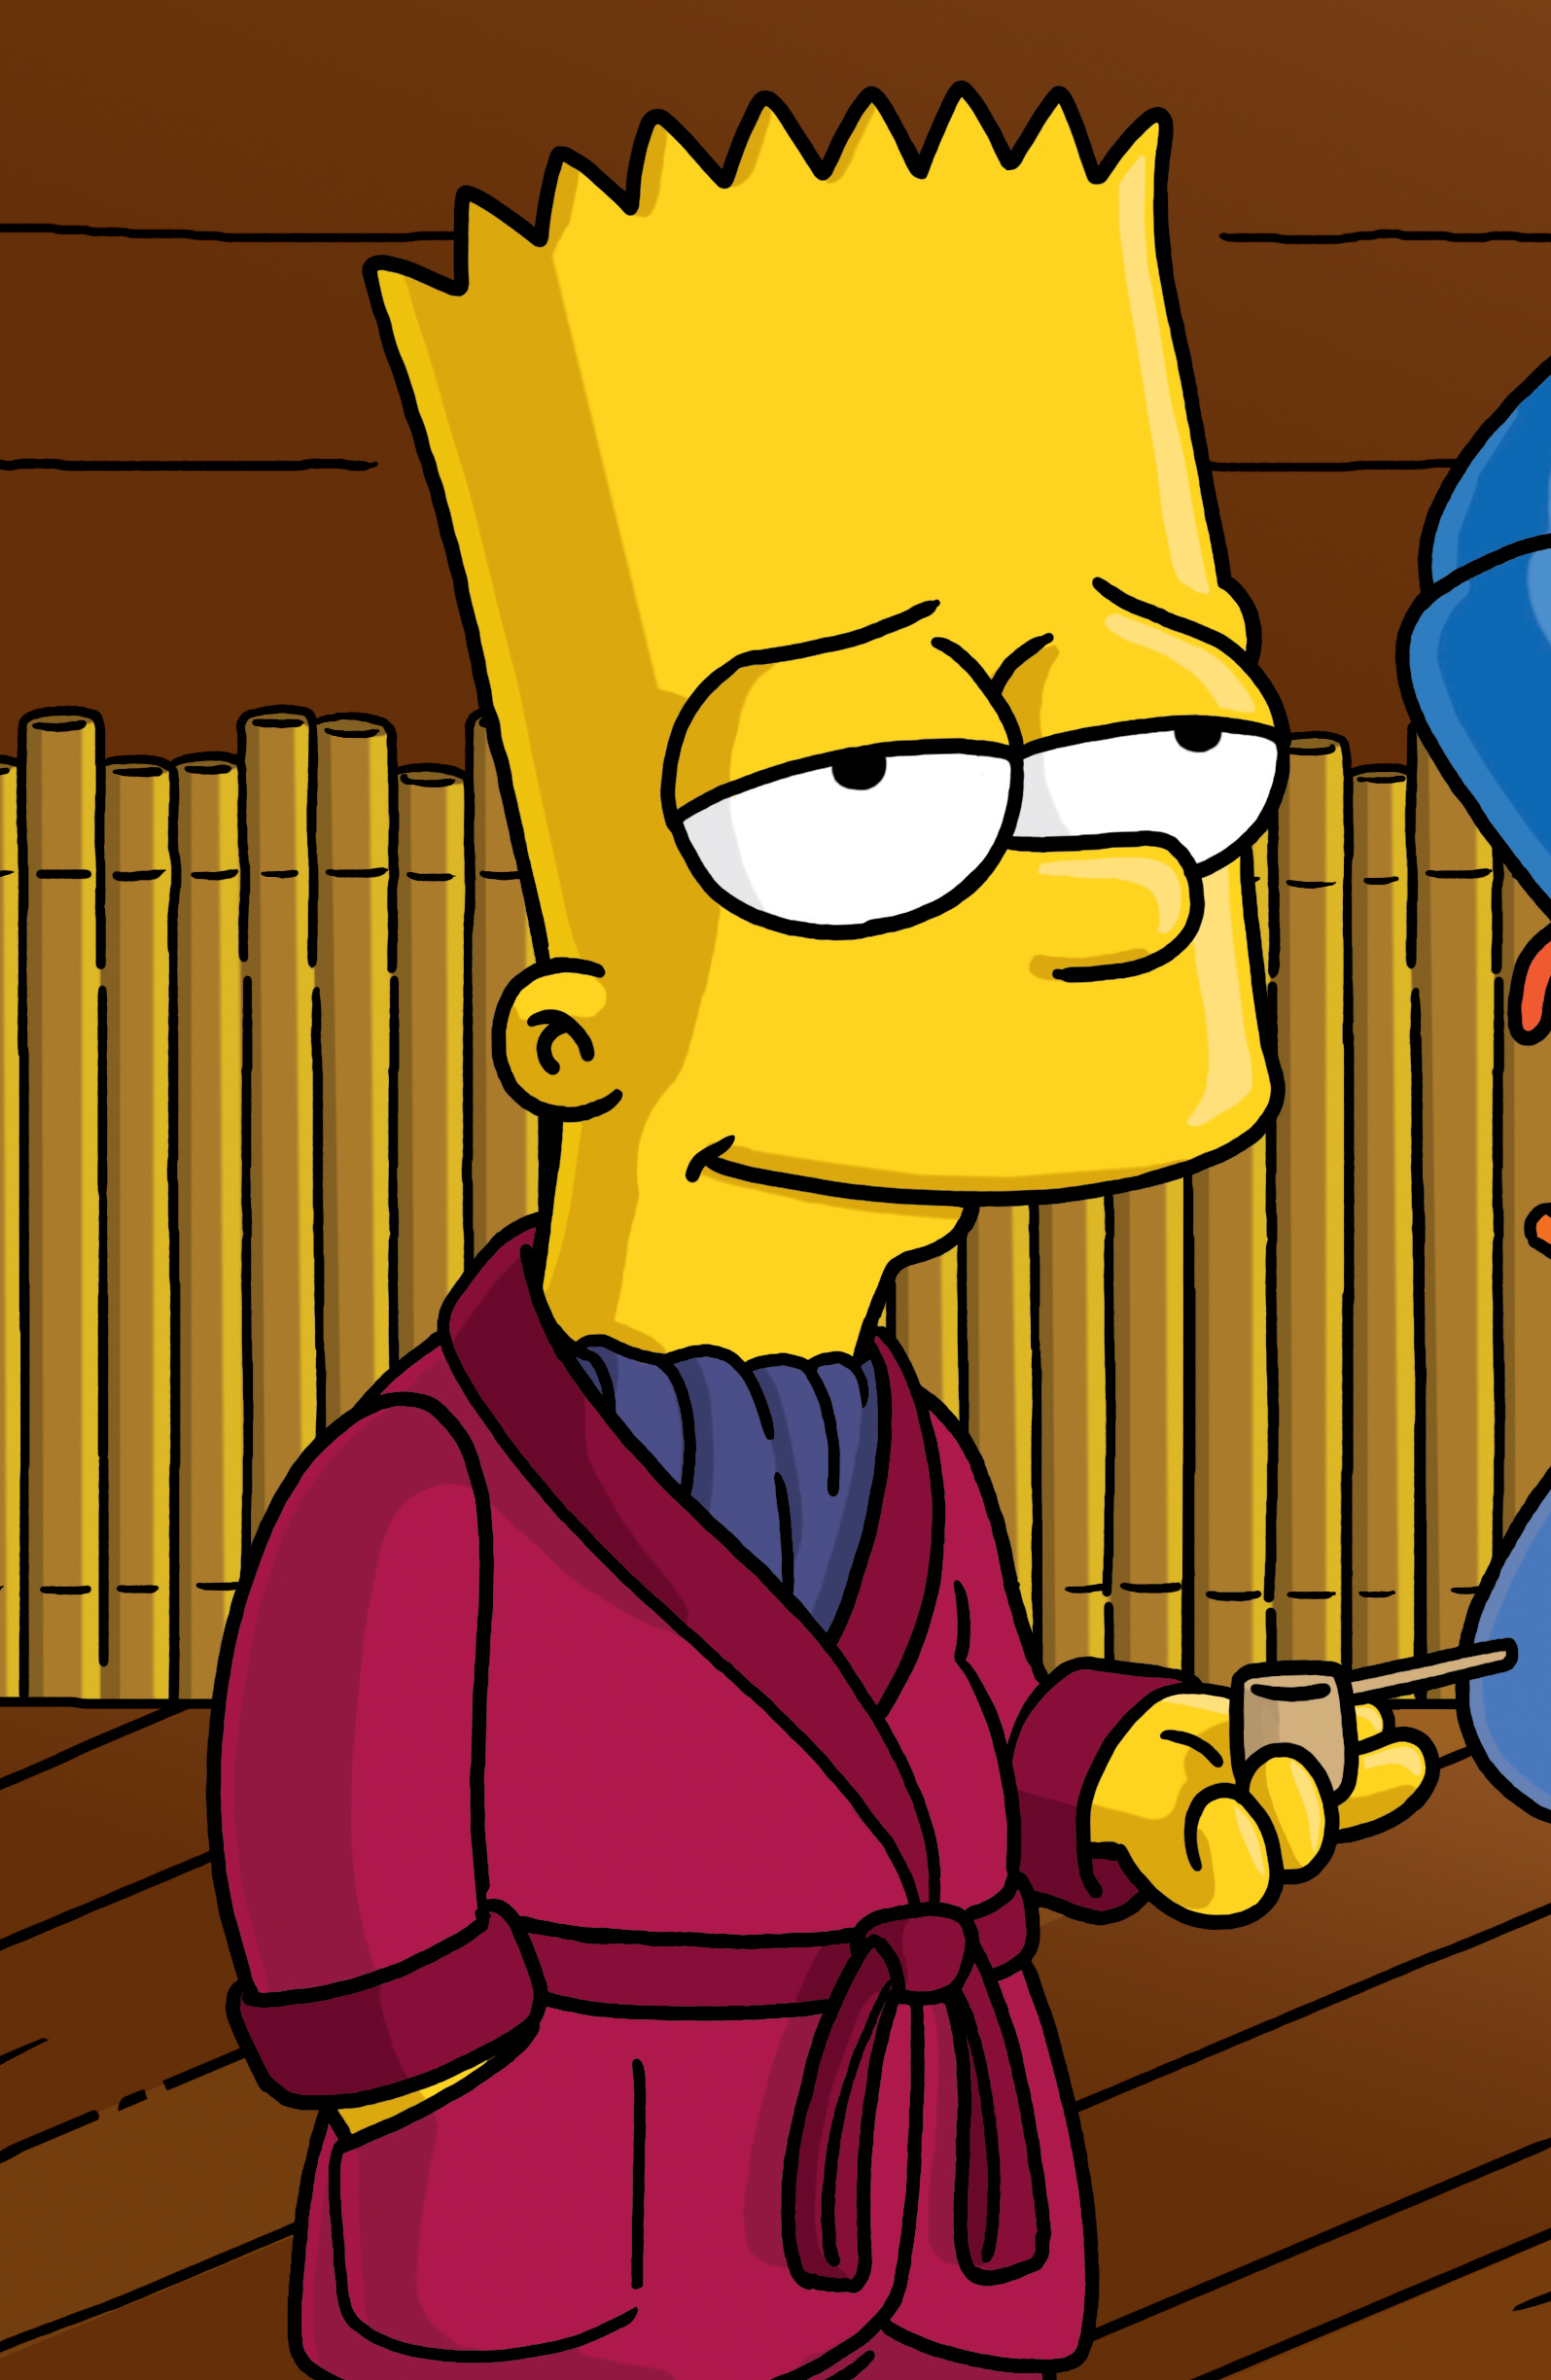 Bart Simpson on THE SIMPSONS